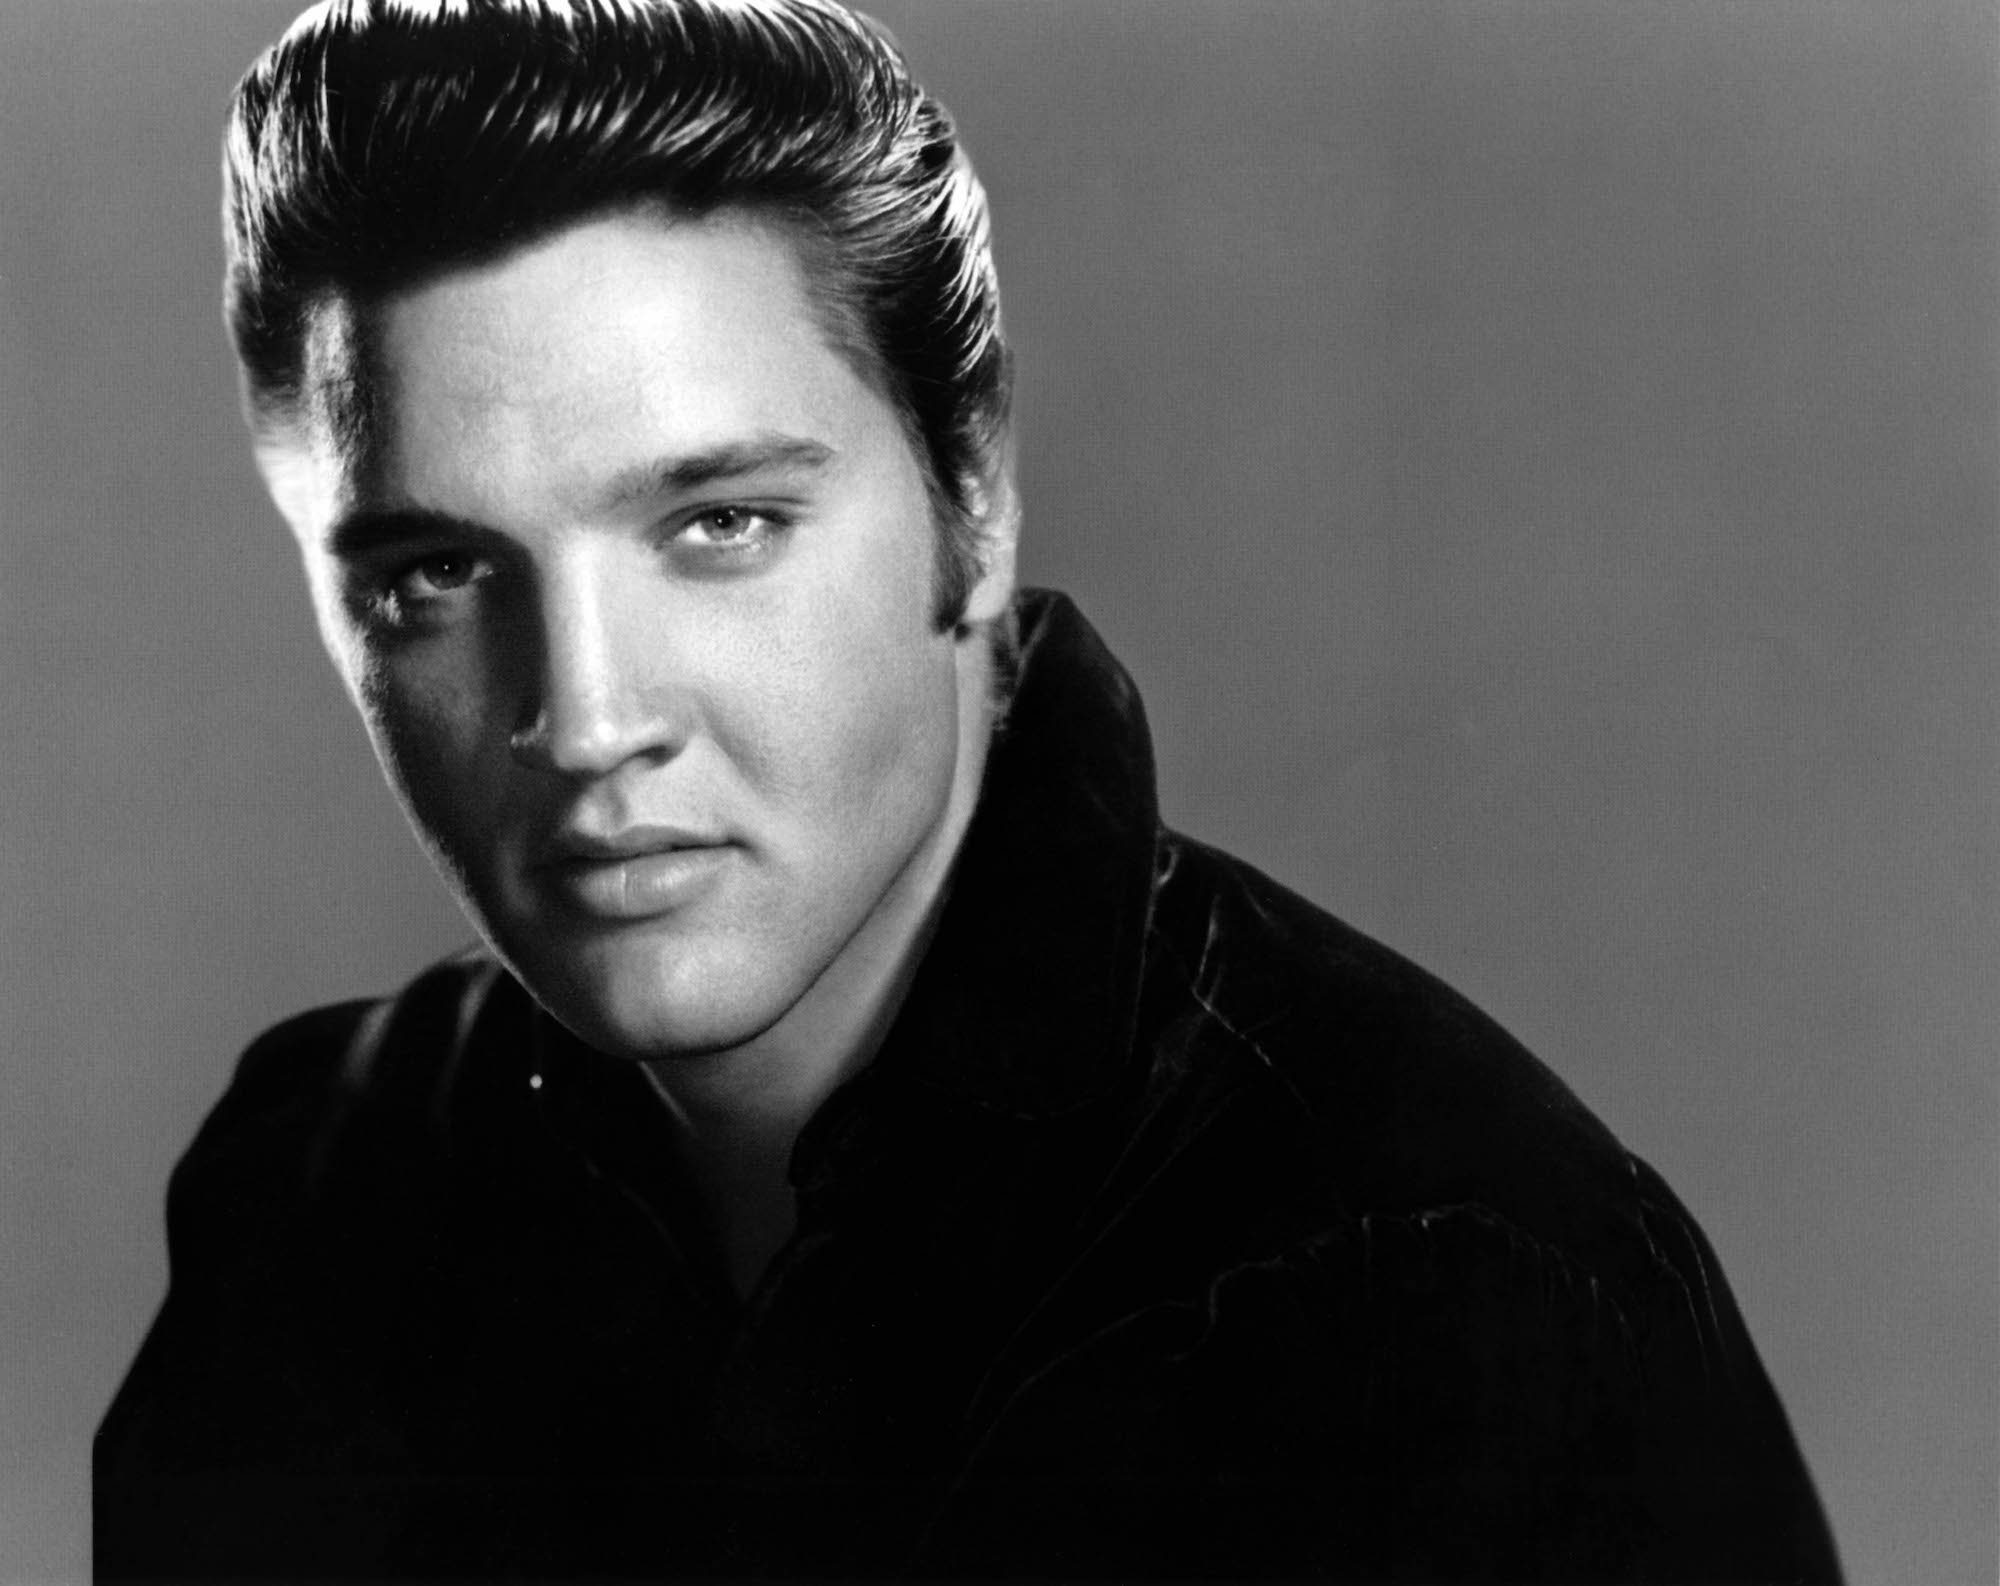 Elvis Presley S Biggest Haircare Routine Included A Scalp Massage And Regular Brushing